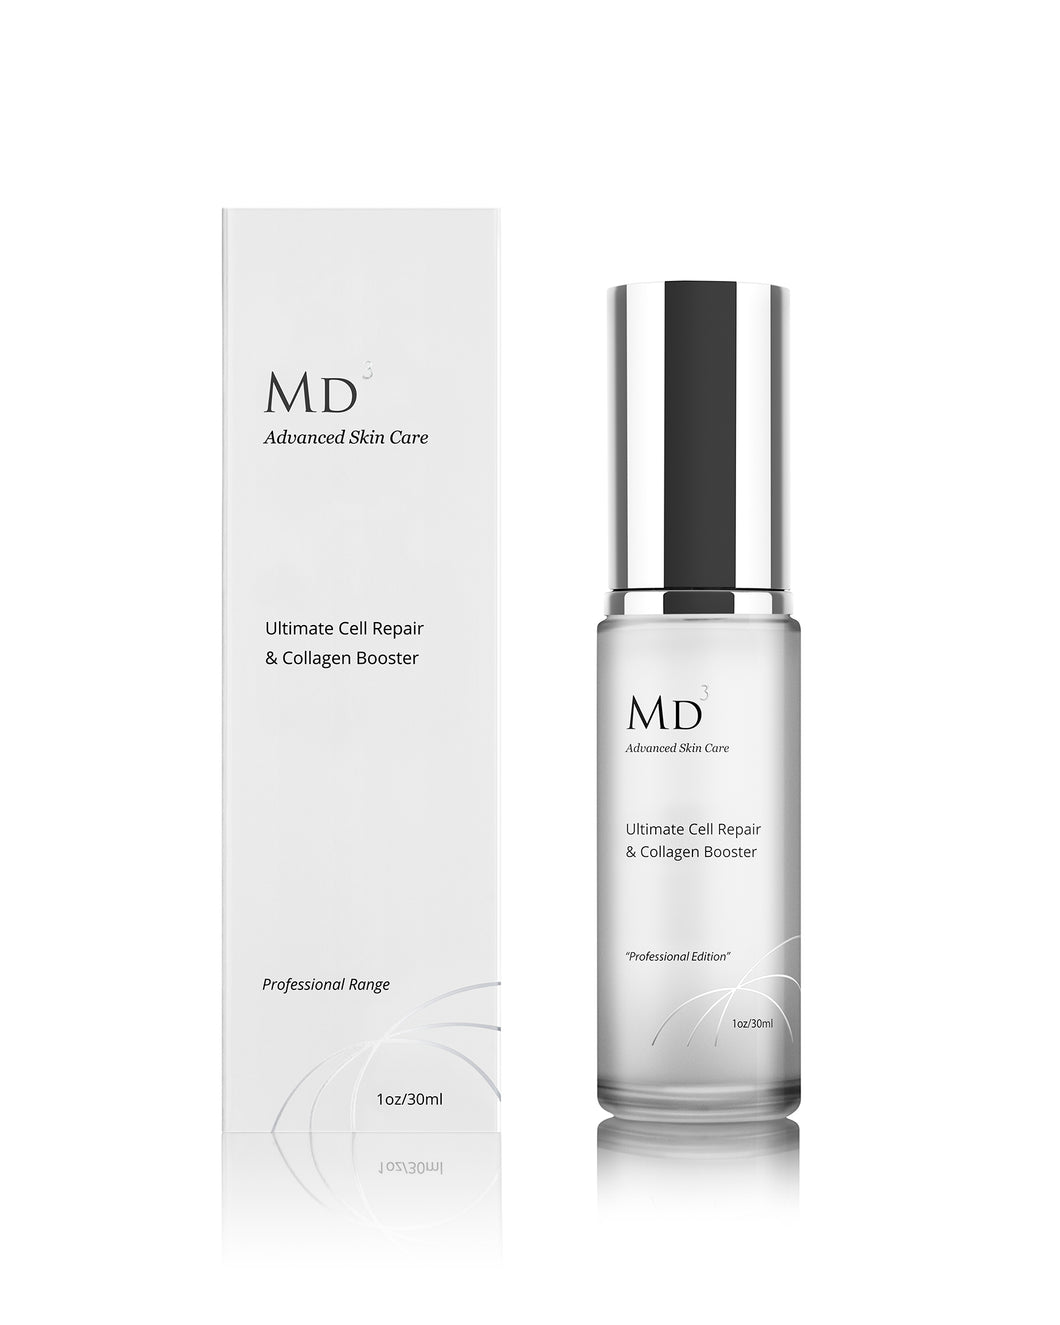 MD3 ULTIMATE CELL REPAIR & COLLAGEN BOOSTING CREAM - MD3 Advanced Skin Care